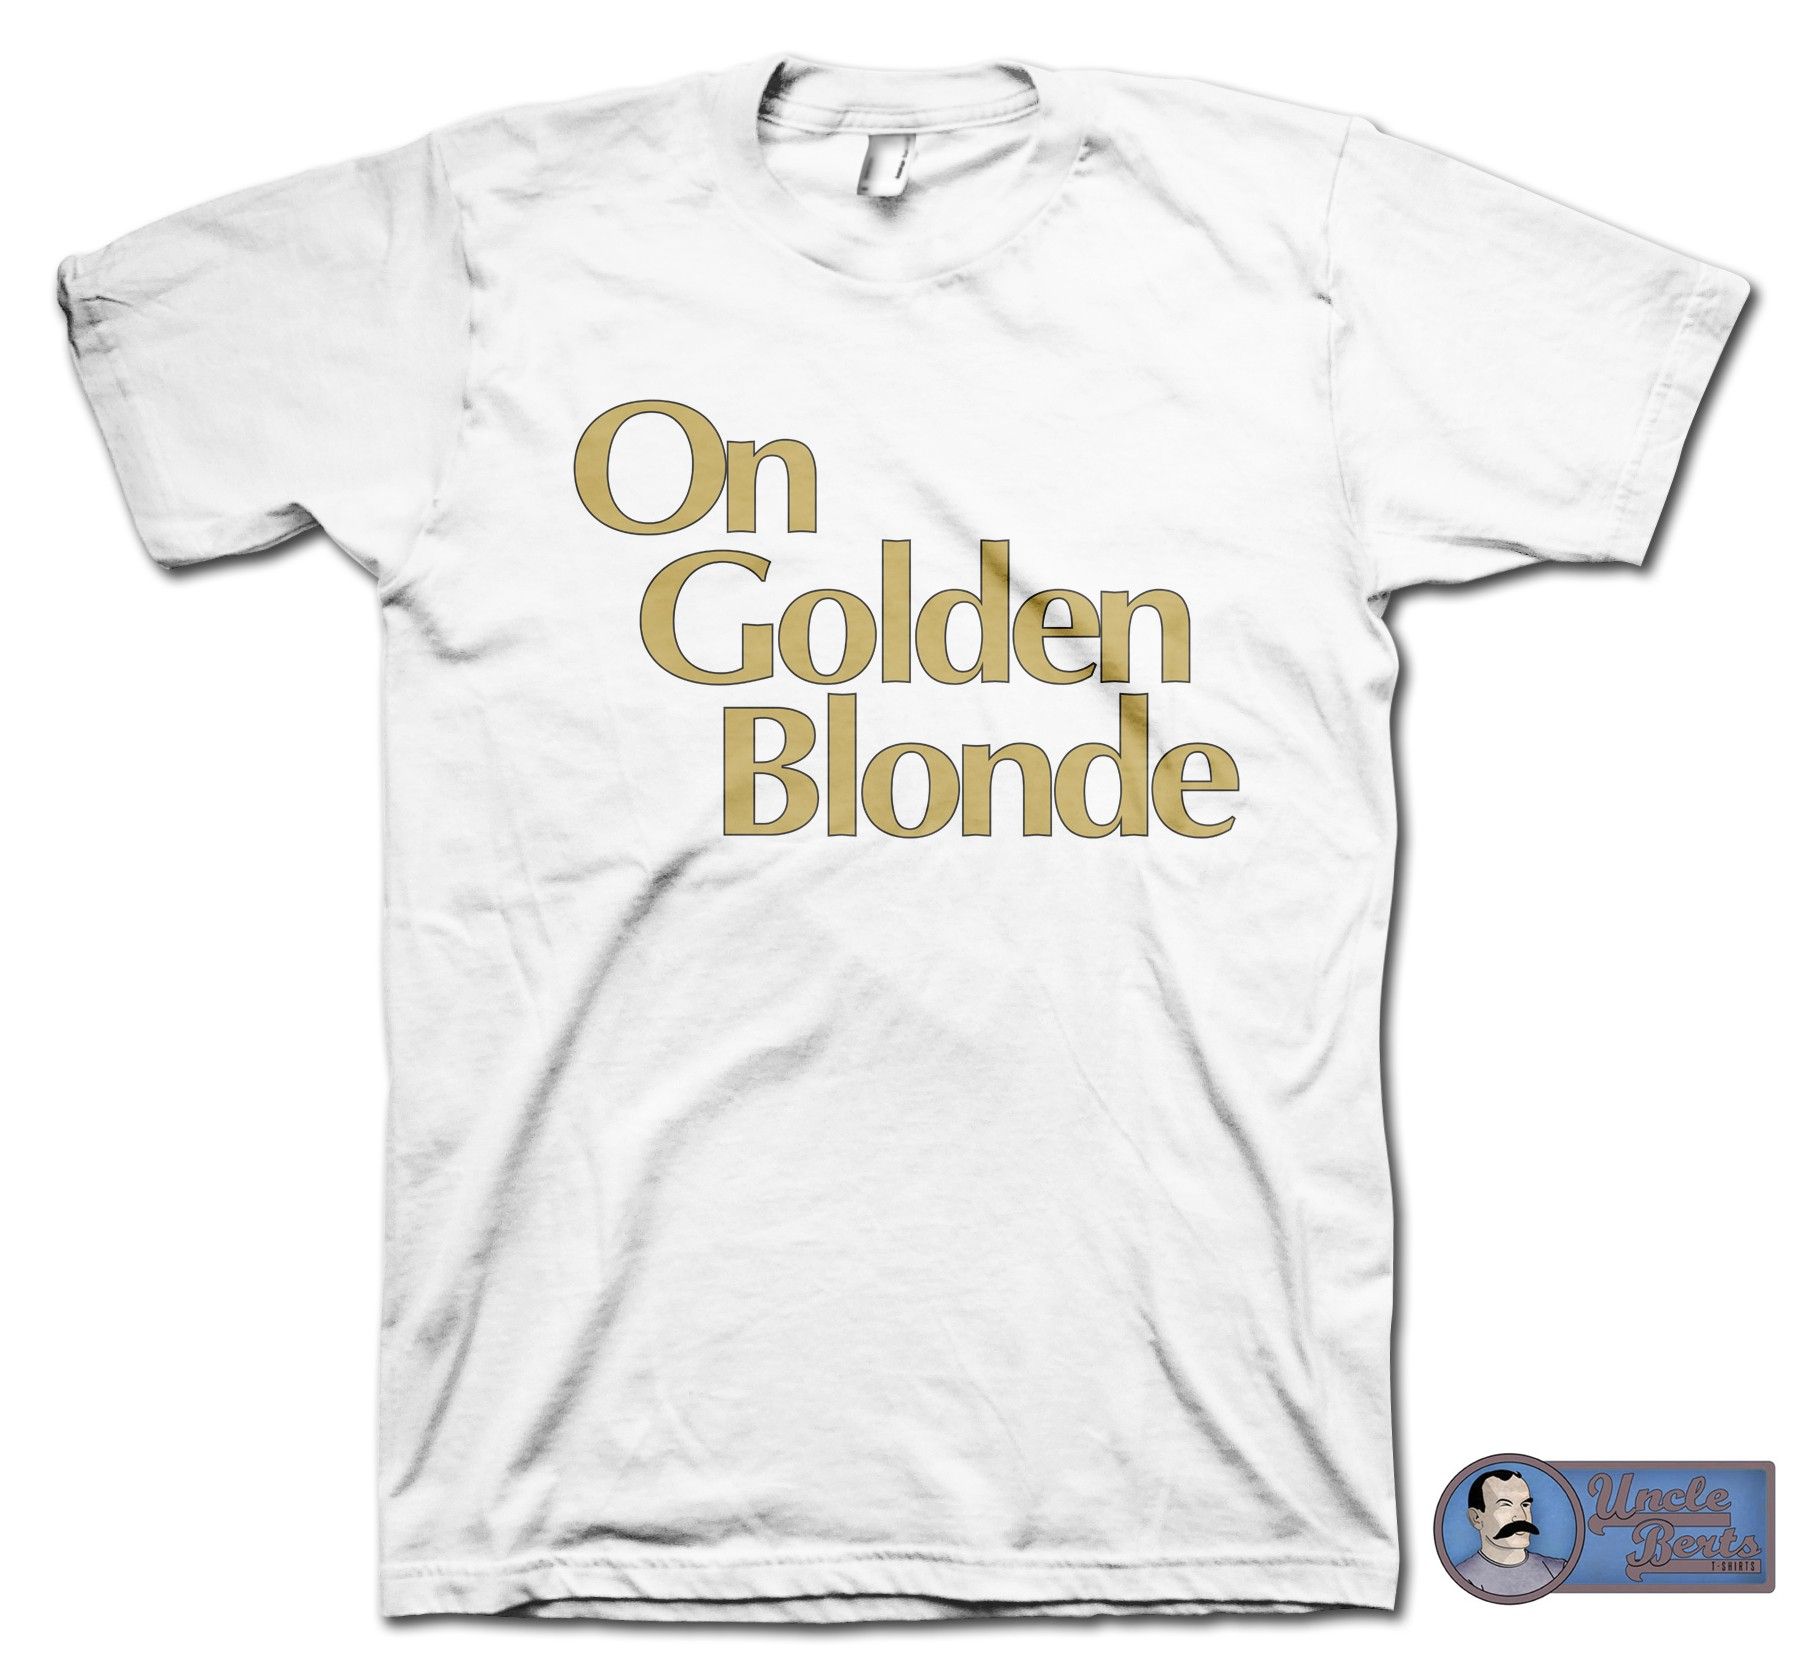 On Golden Blonde Parody T-Shirt